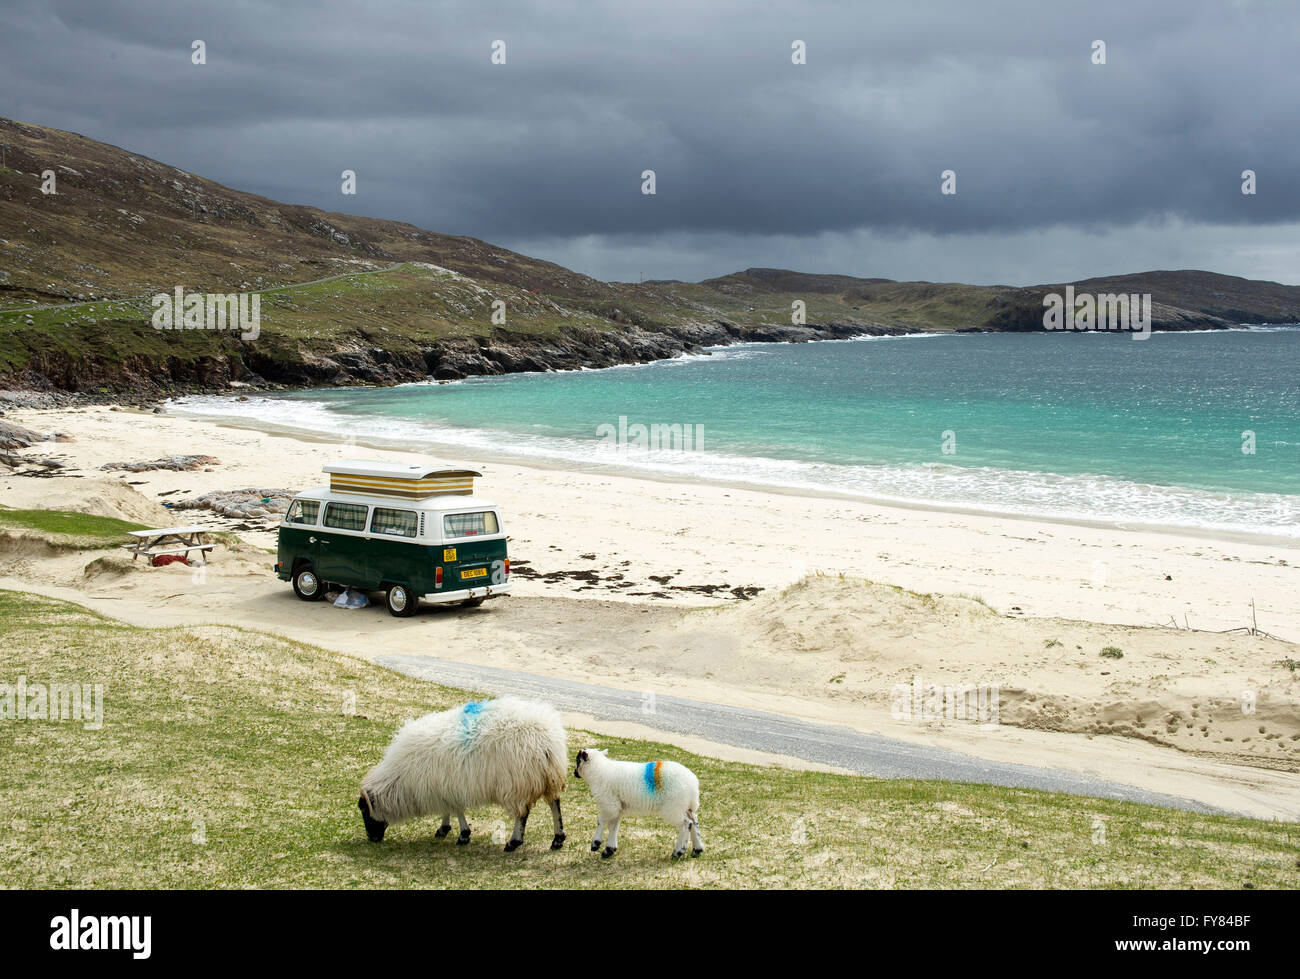 Huisinish beach Outer Hebrides. A VW Camper Van parked at Huisinish beach, Isle of Harris, Outer Hebrides Scotland - Stock Image